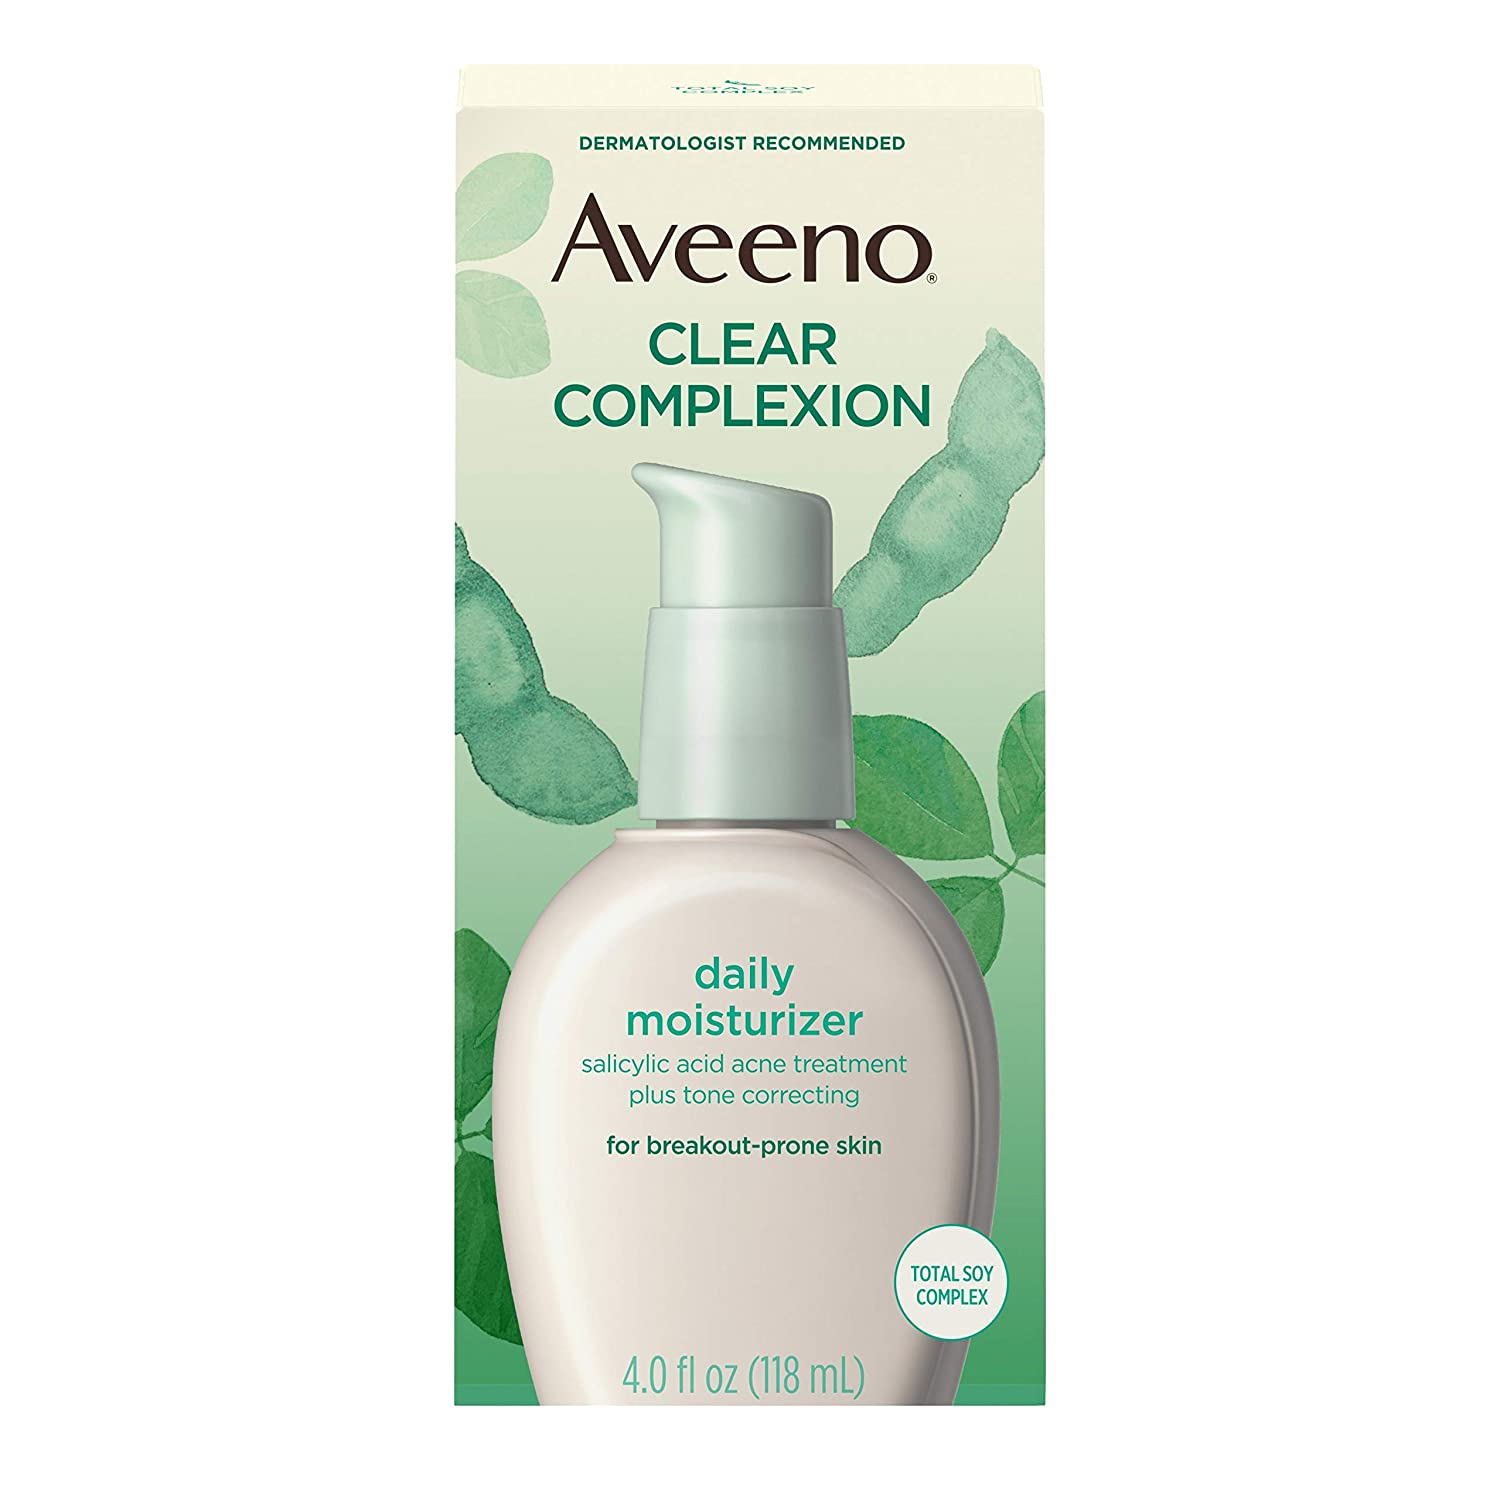 Aveeno Clear Complexion Salicylic Acid Acne-Fighting Daily Face Moisturizer with Total Soy Complex, For Breakout-Prone Skin, Oil-Free and Hypoallergenic